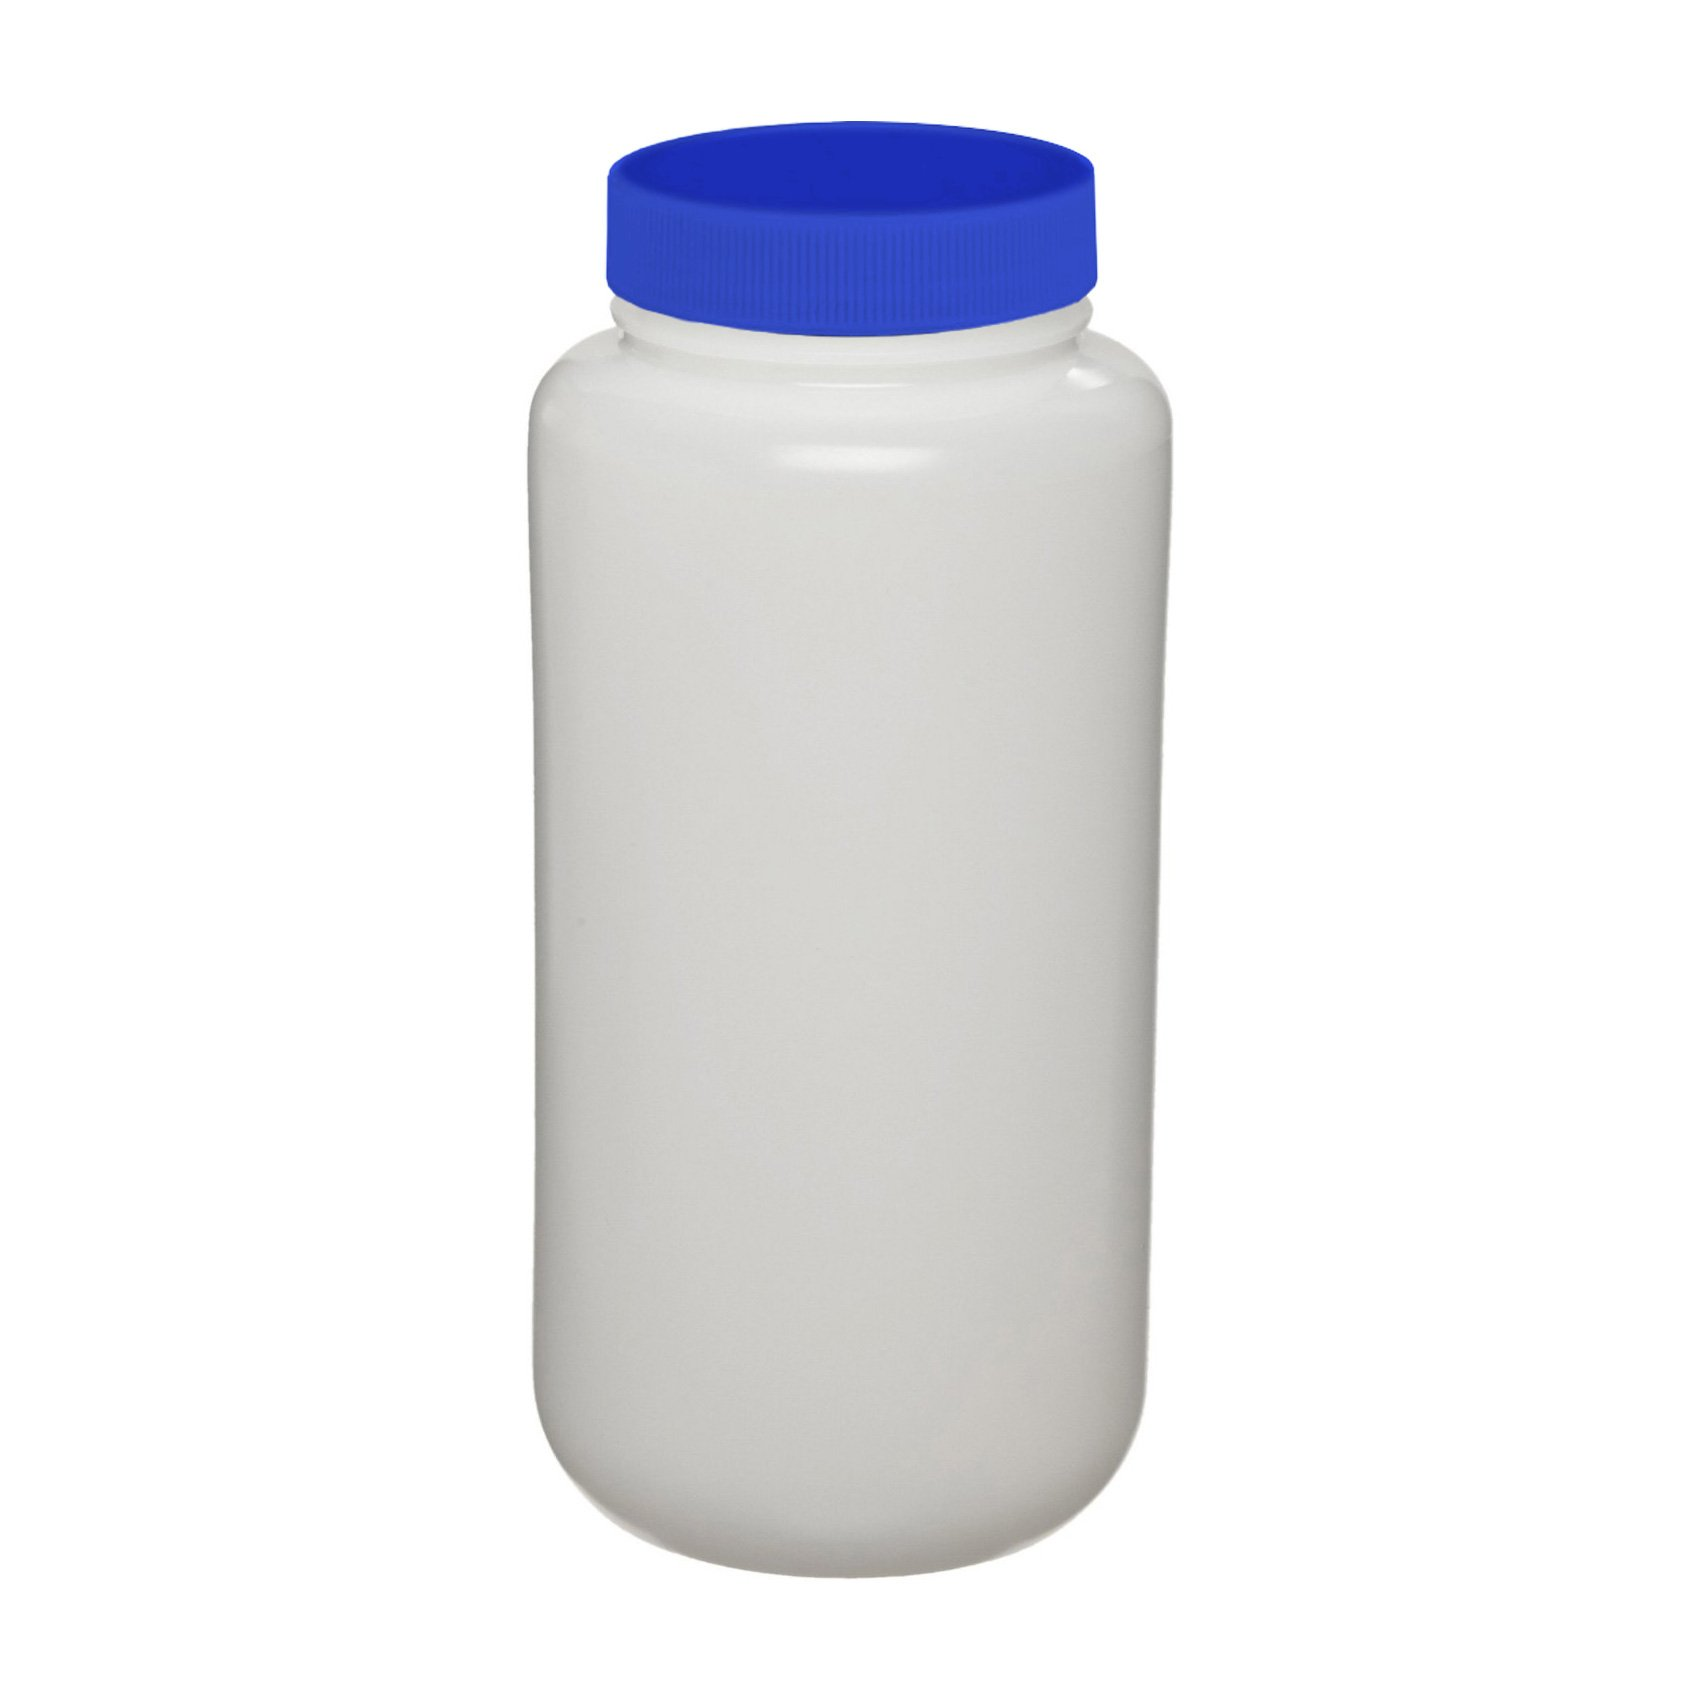 I-Chem Brand 312-0250 300 Series HDPE Translucent Wide Mouth Packer, Certifed, With Cap, Capacity: 250mL (Case of 24)